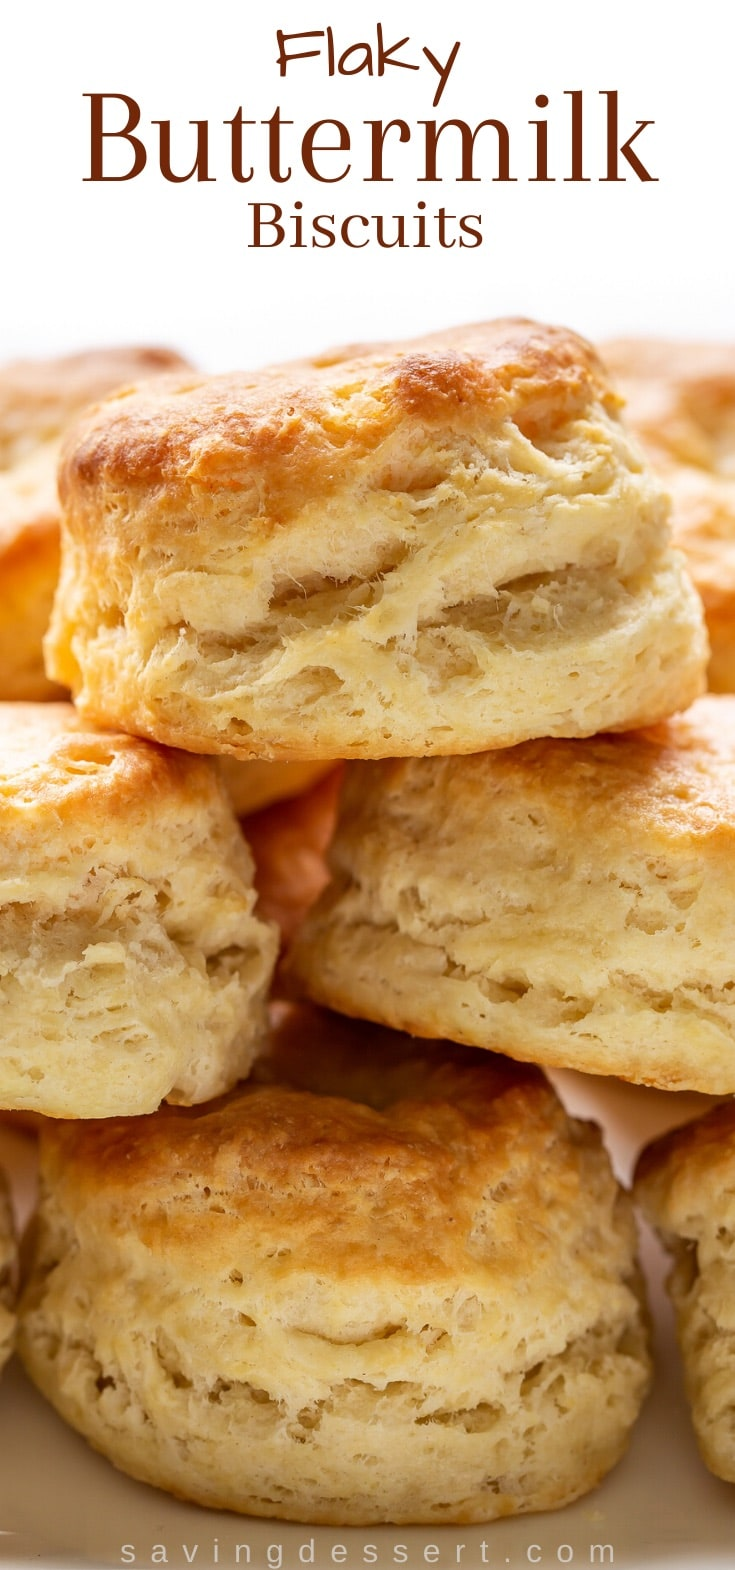 A stack of buttermilk biscuits on a platter